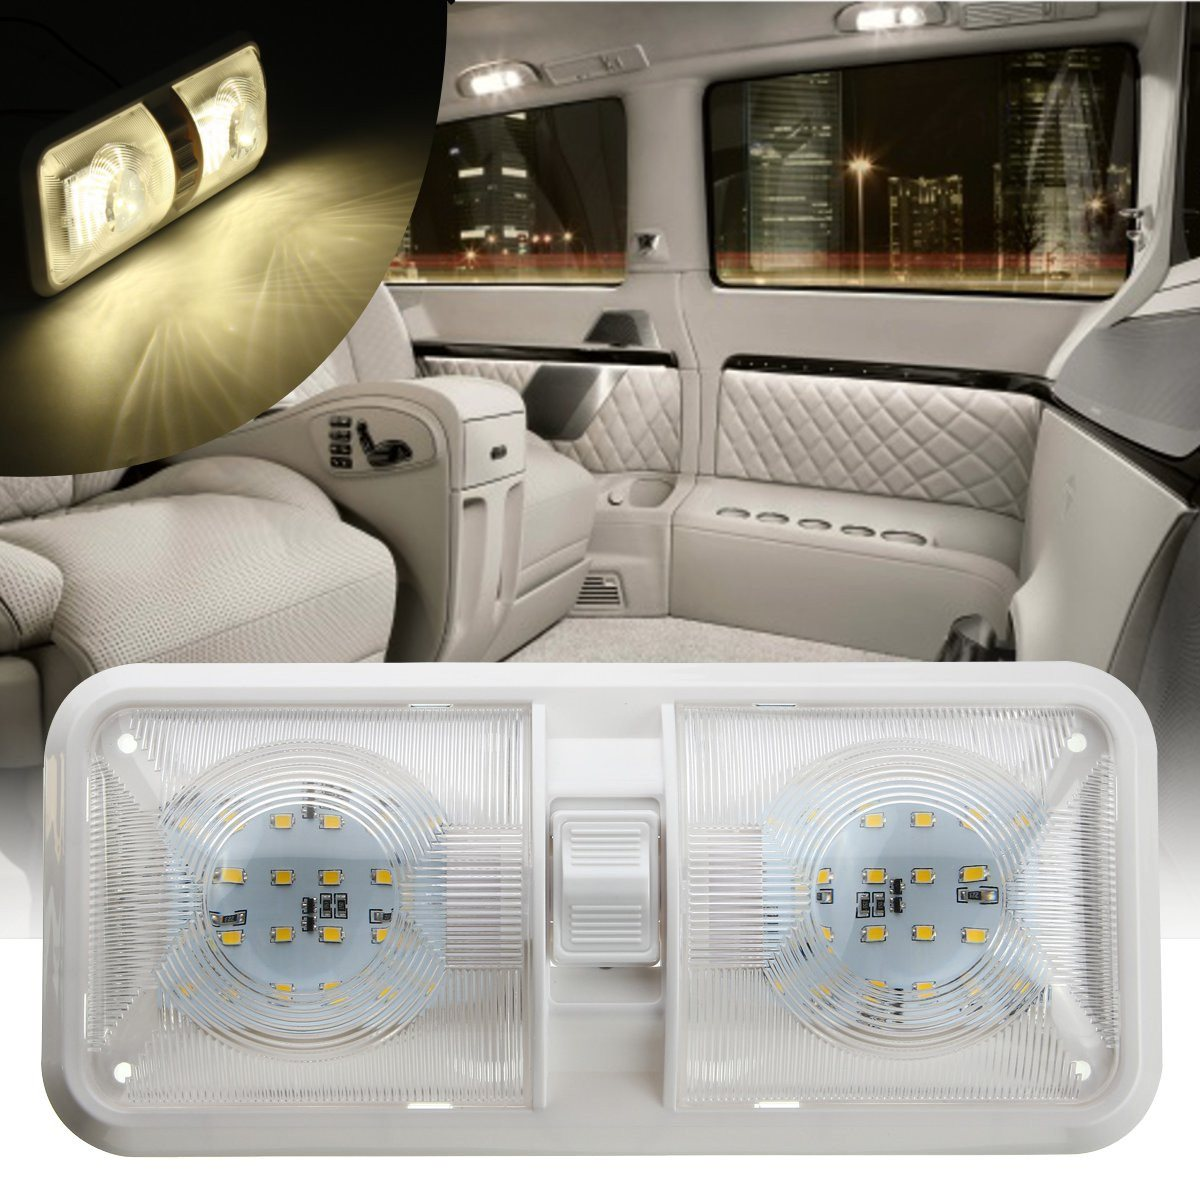 Double Dome Light 12V 48 LED Interior Roof Ceiling Reading For RV Boat For Camper Trailer Plastic 1PC White